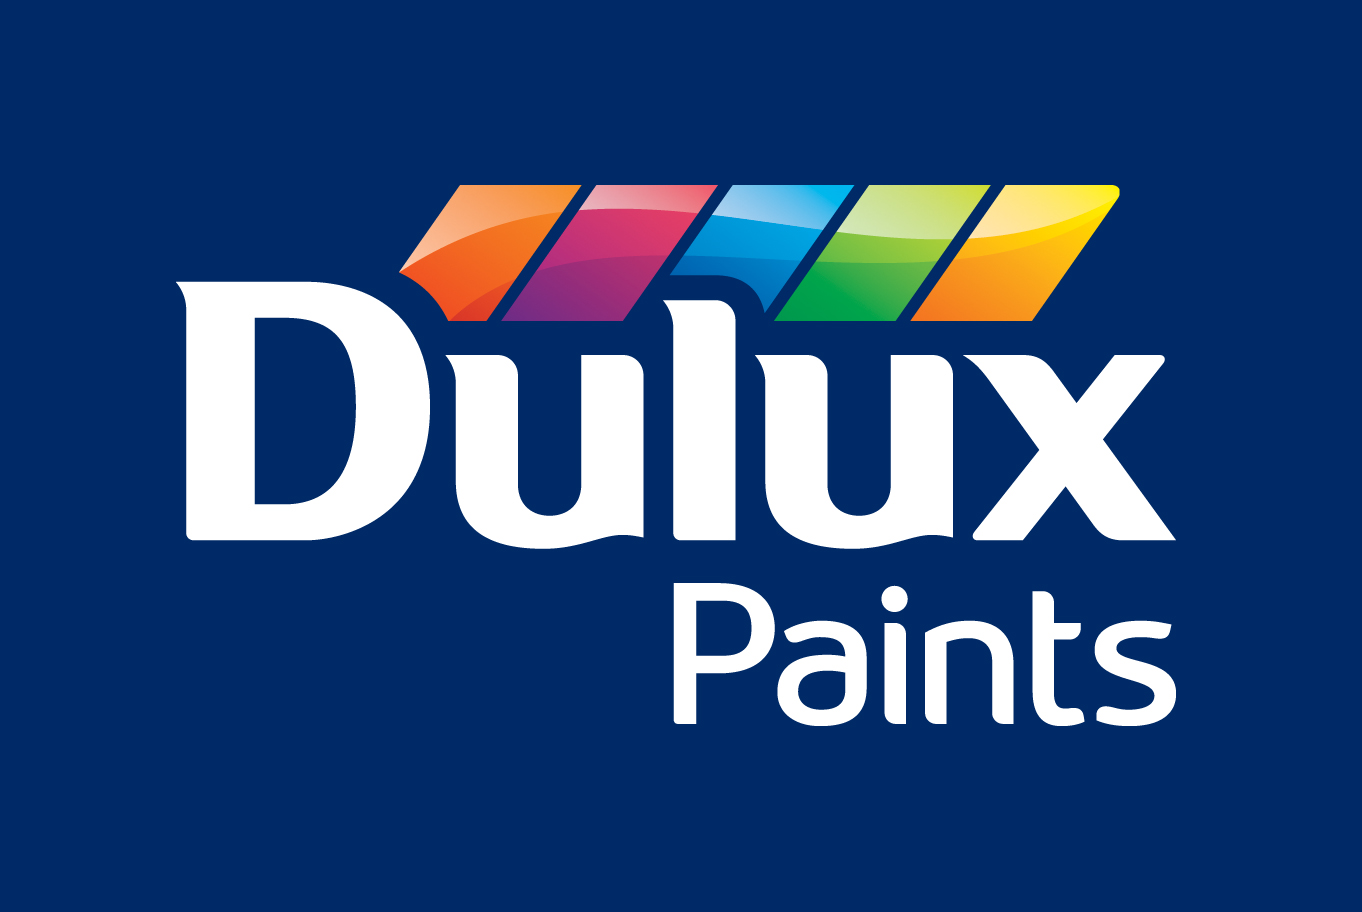 Save up to 40% off Dulux Paints manufactured paints and stains